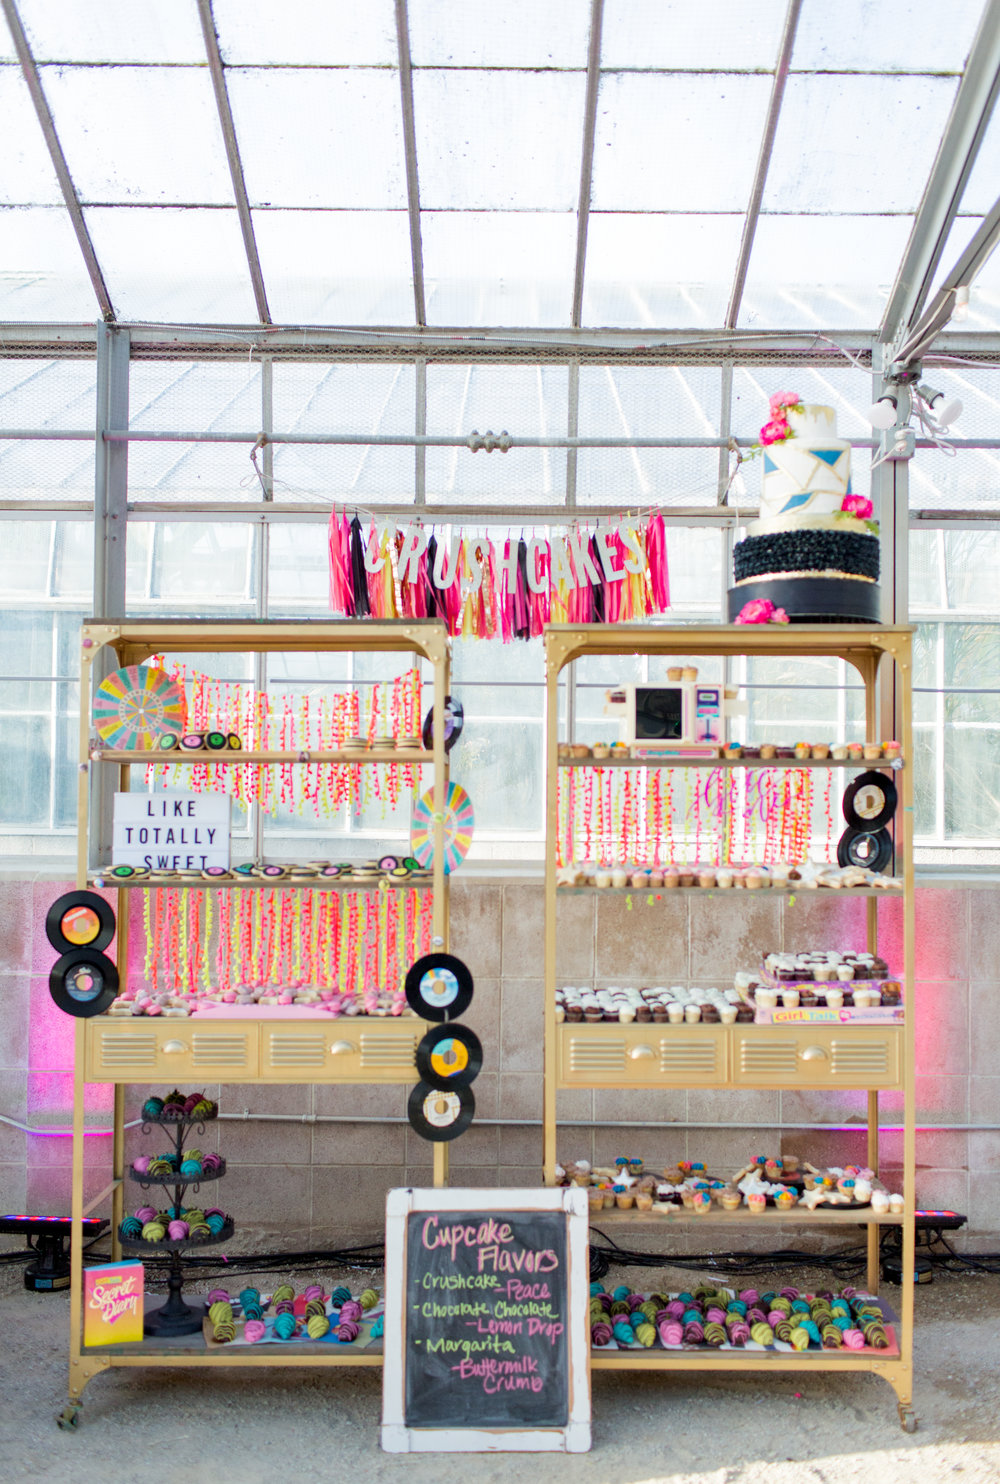 santabarbarawedding.com | The Jam Event | Orchid Farm | Santa Barbara Event Design Showcase